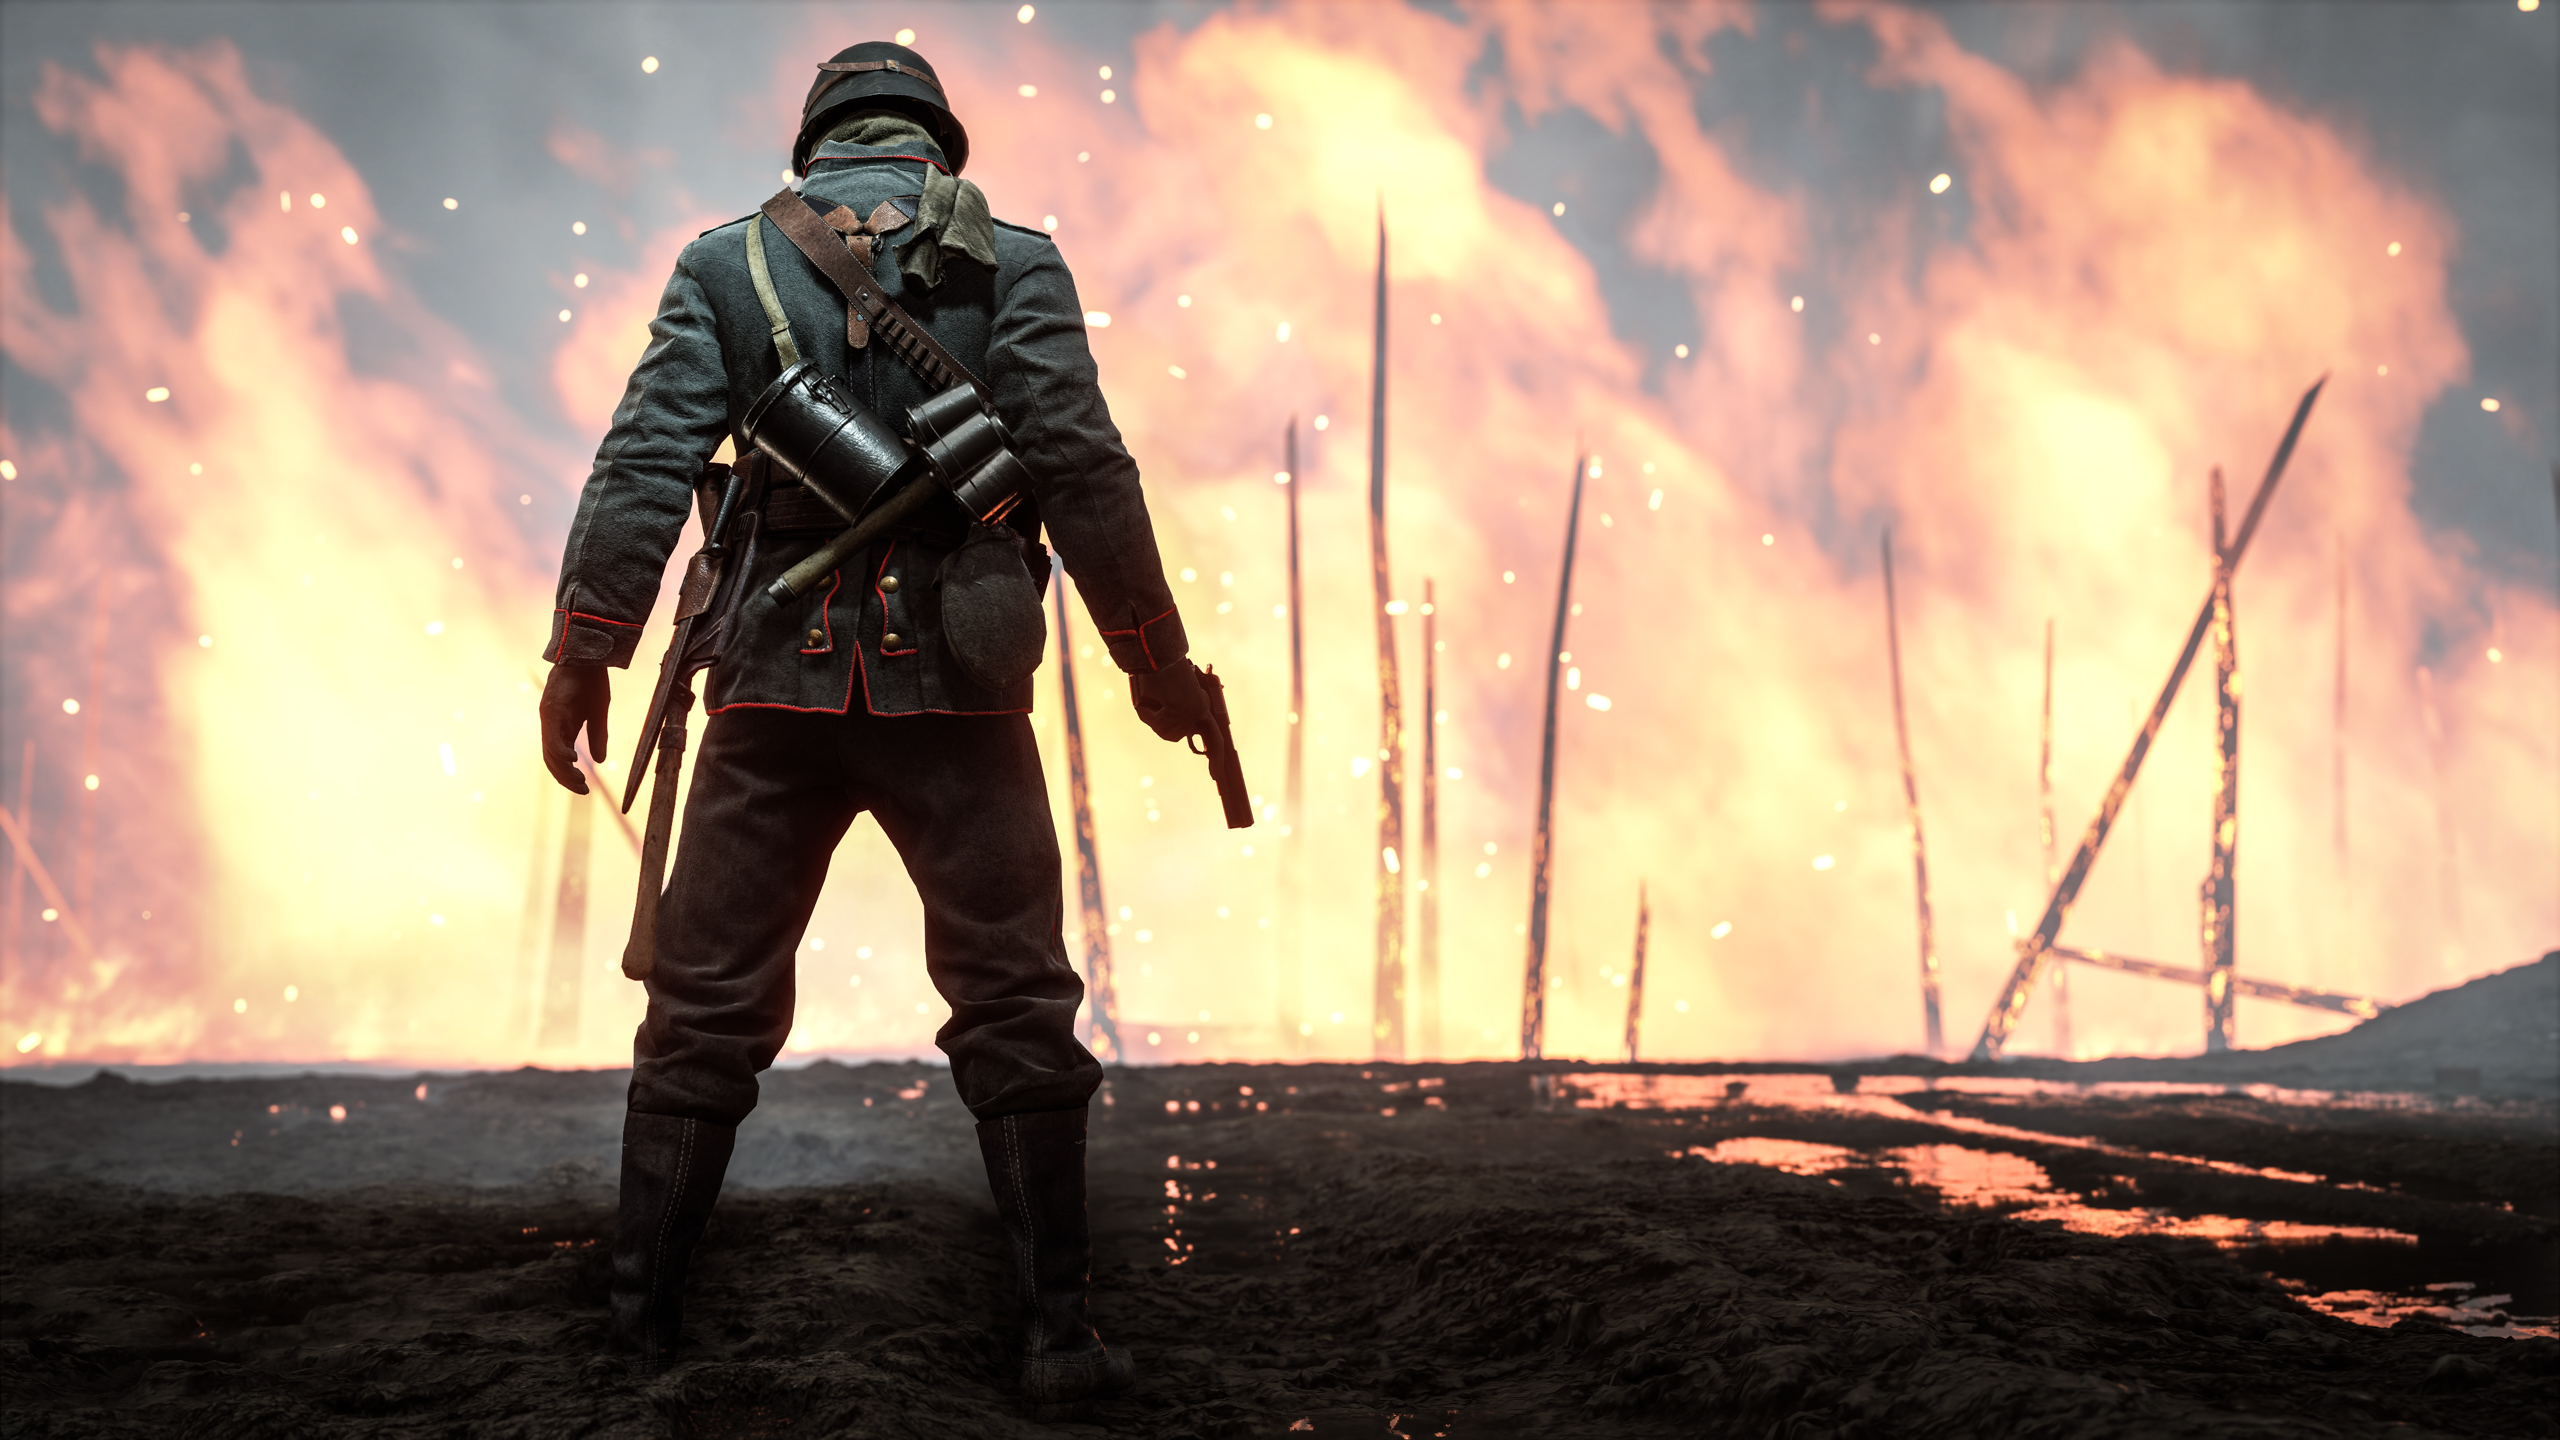 Battlefield1, HD Games, 4k Wallpapers, Images, Backgrounds ...